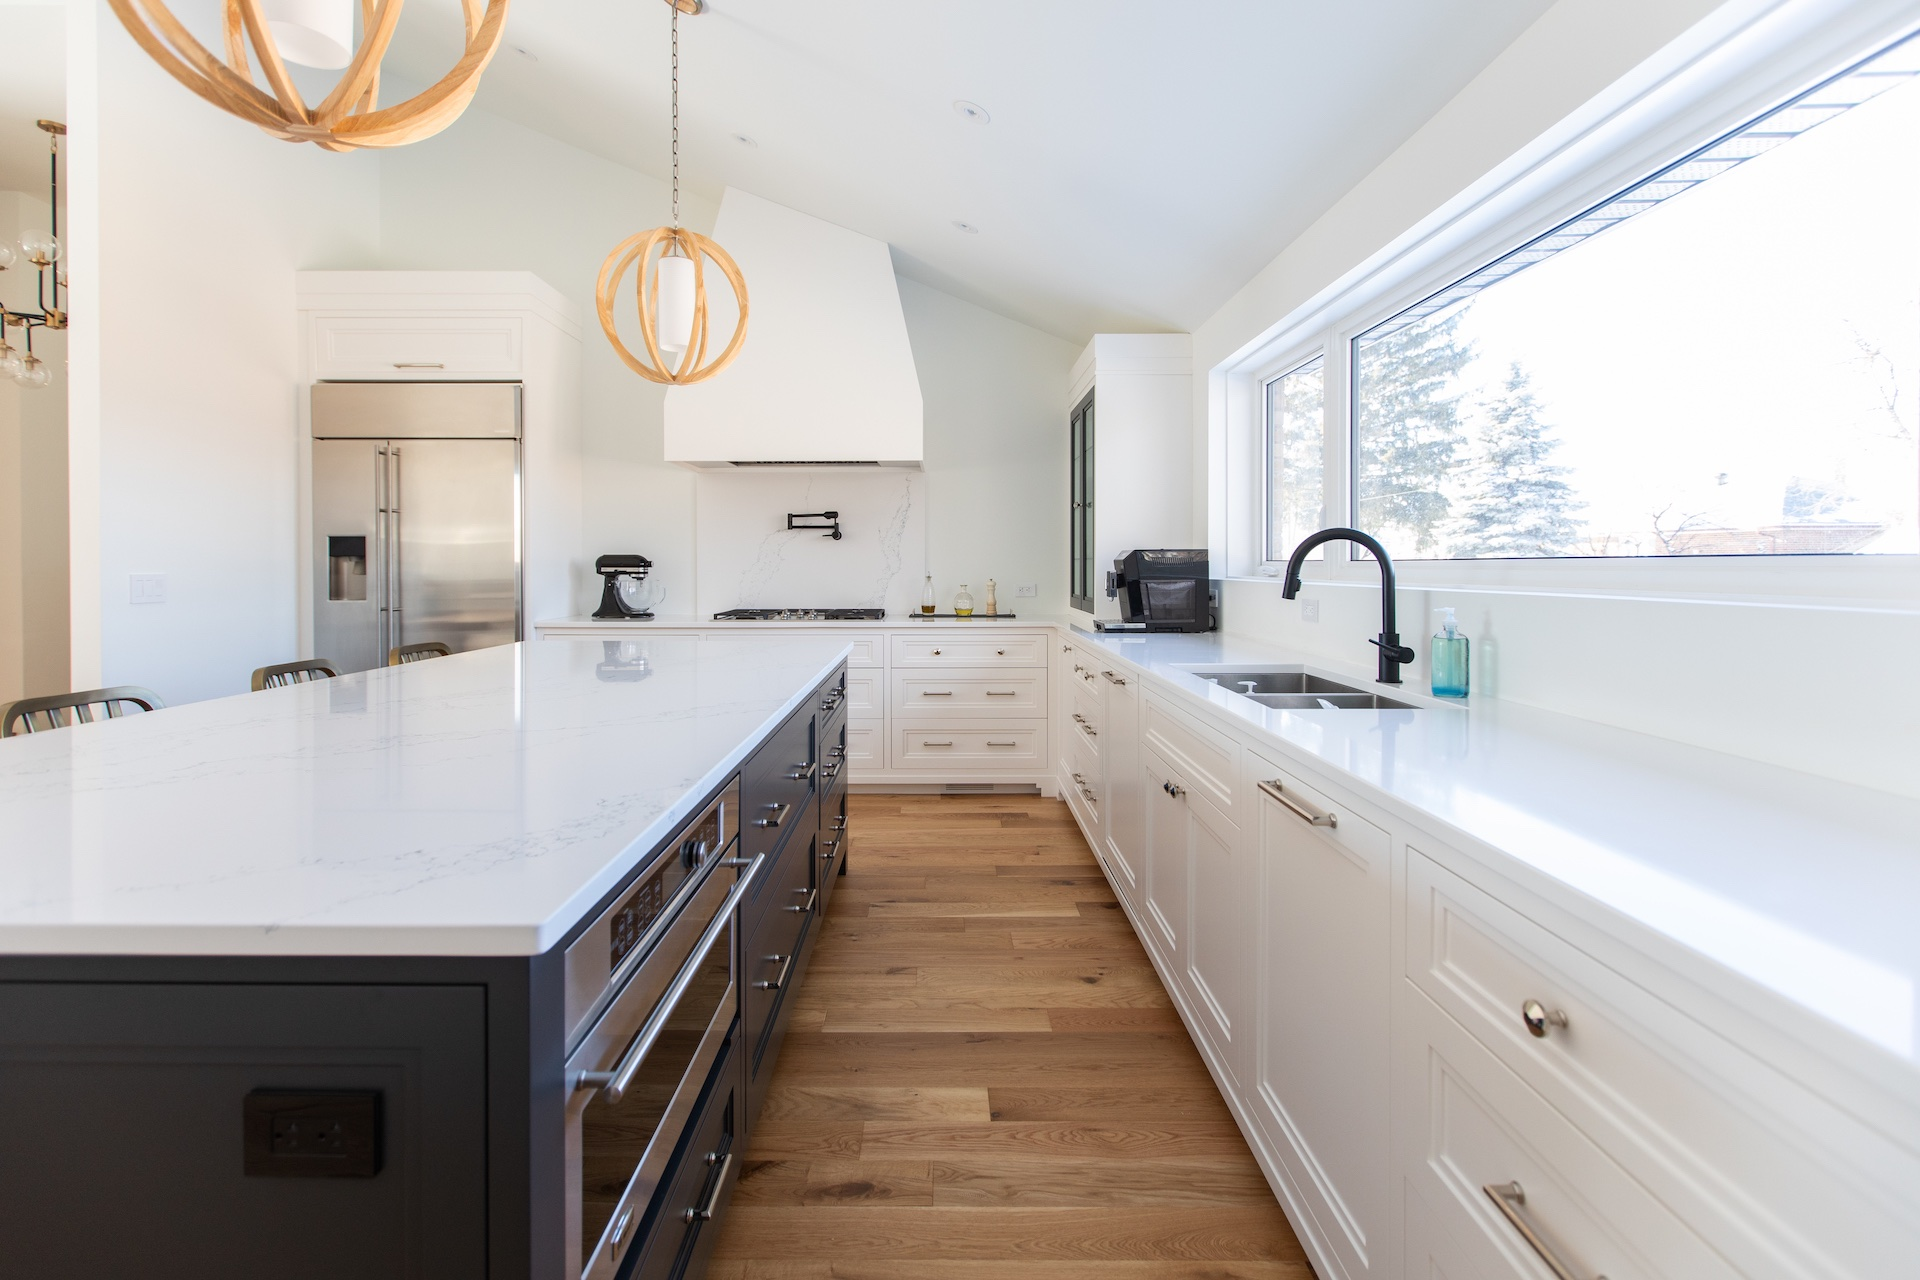 Blue island with white kitchen cabinets